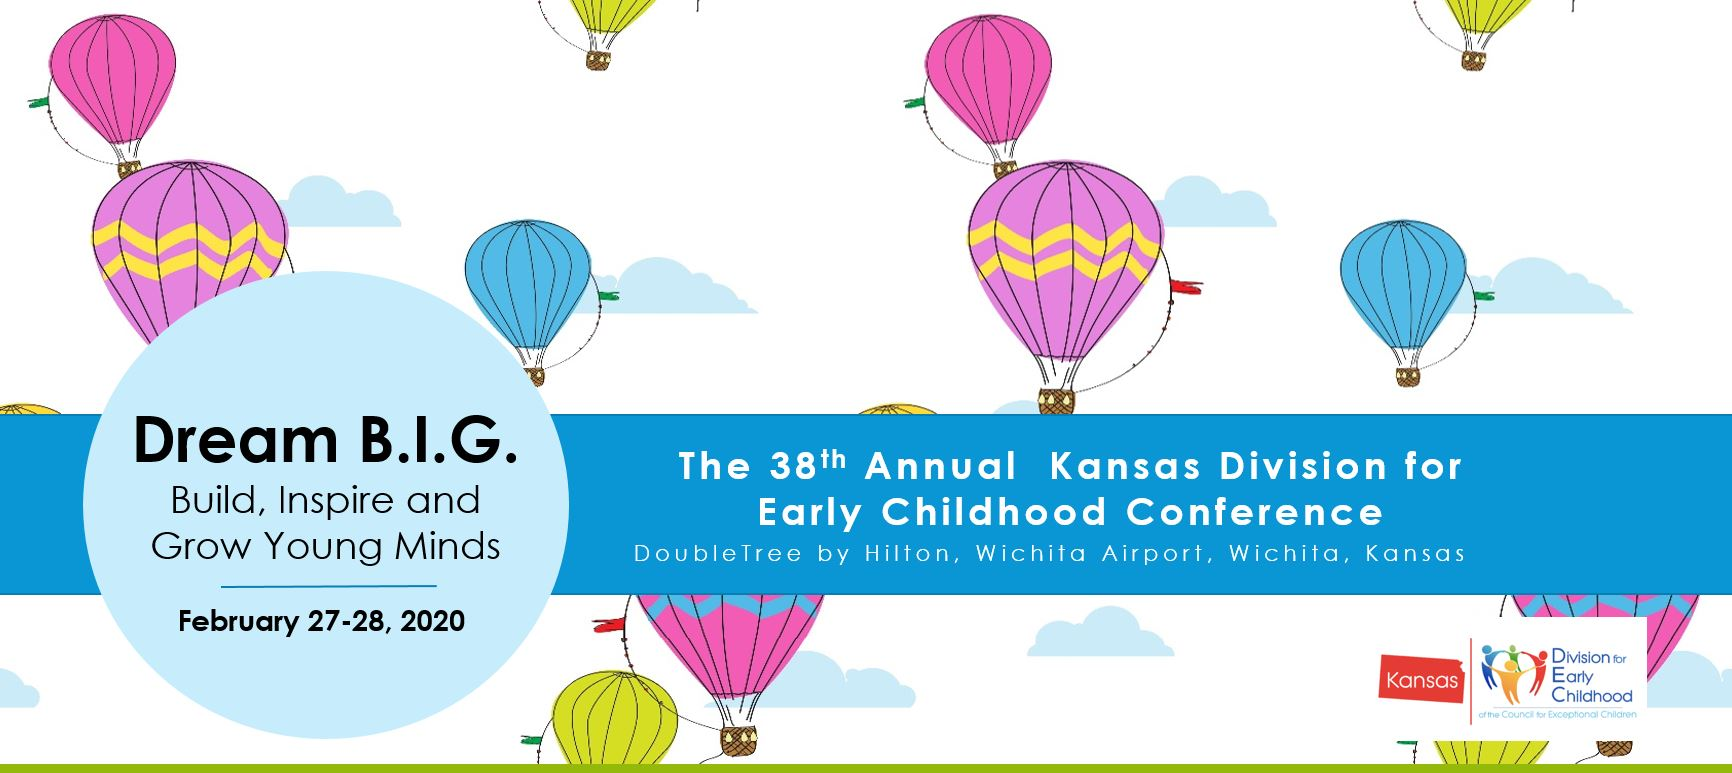 The 38th Annual Kansas Division for Early Childhood Conference